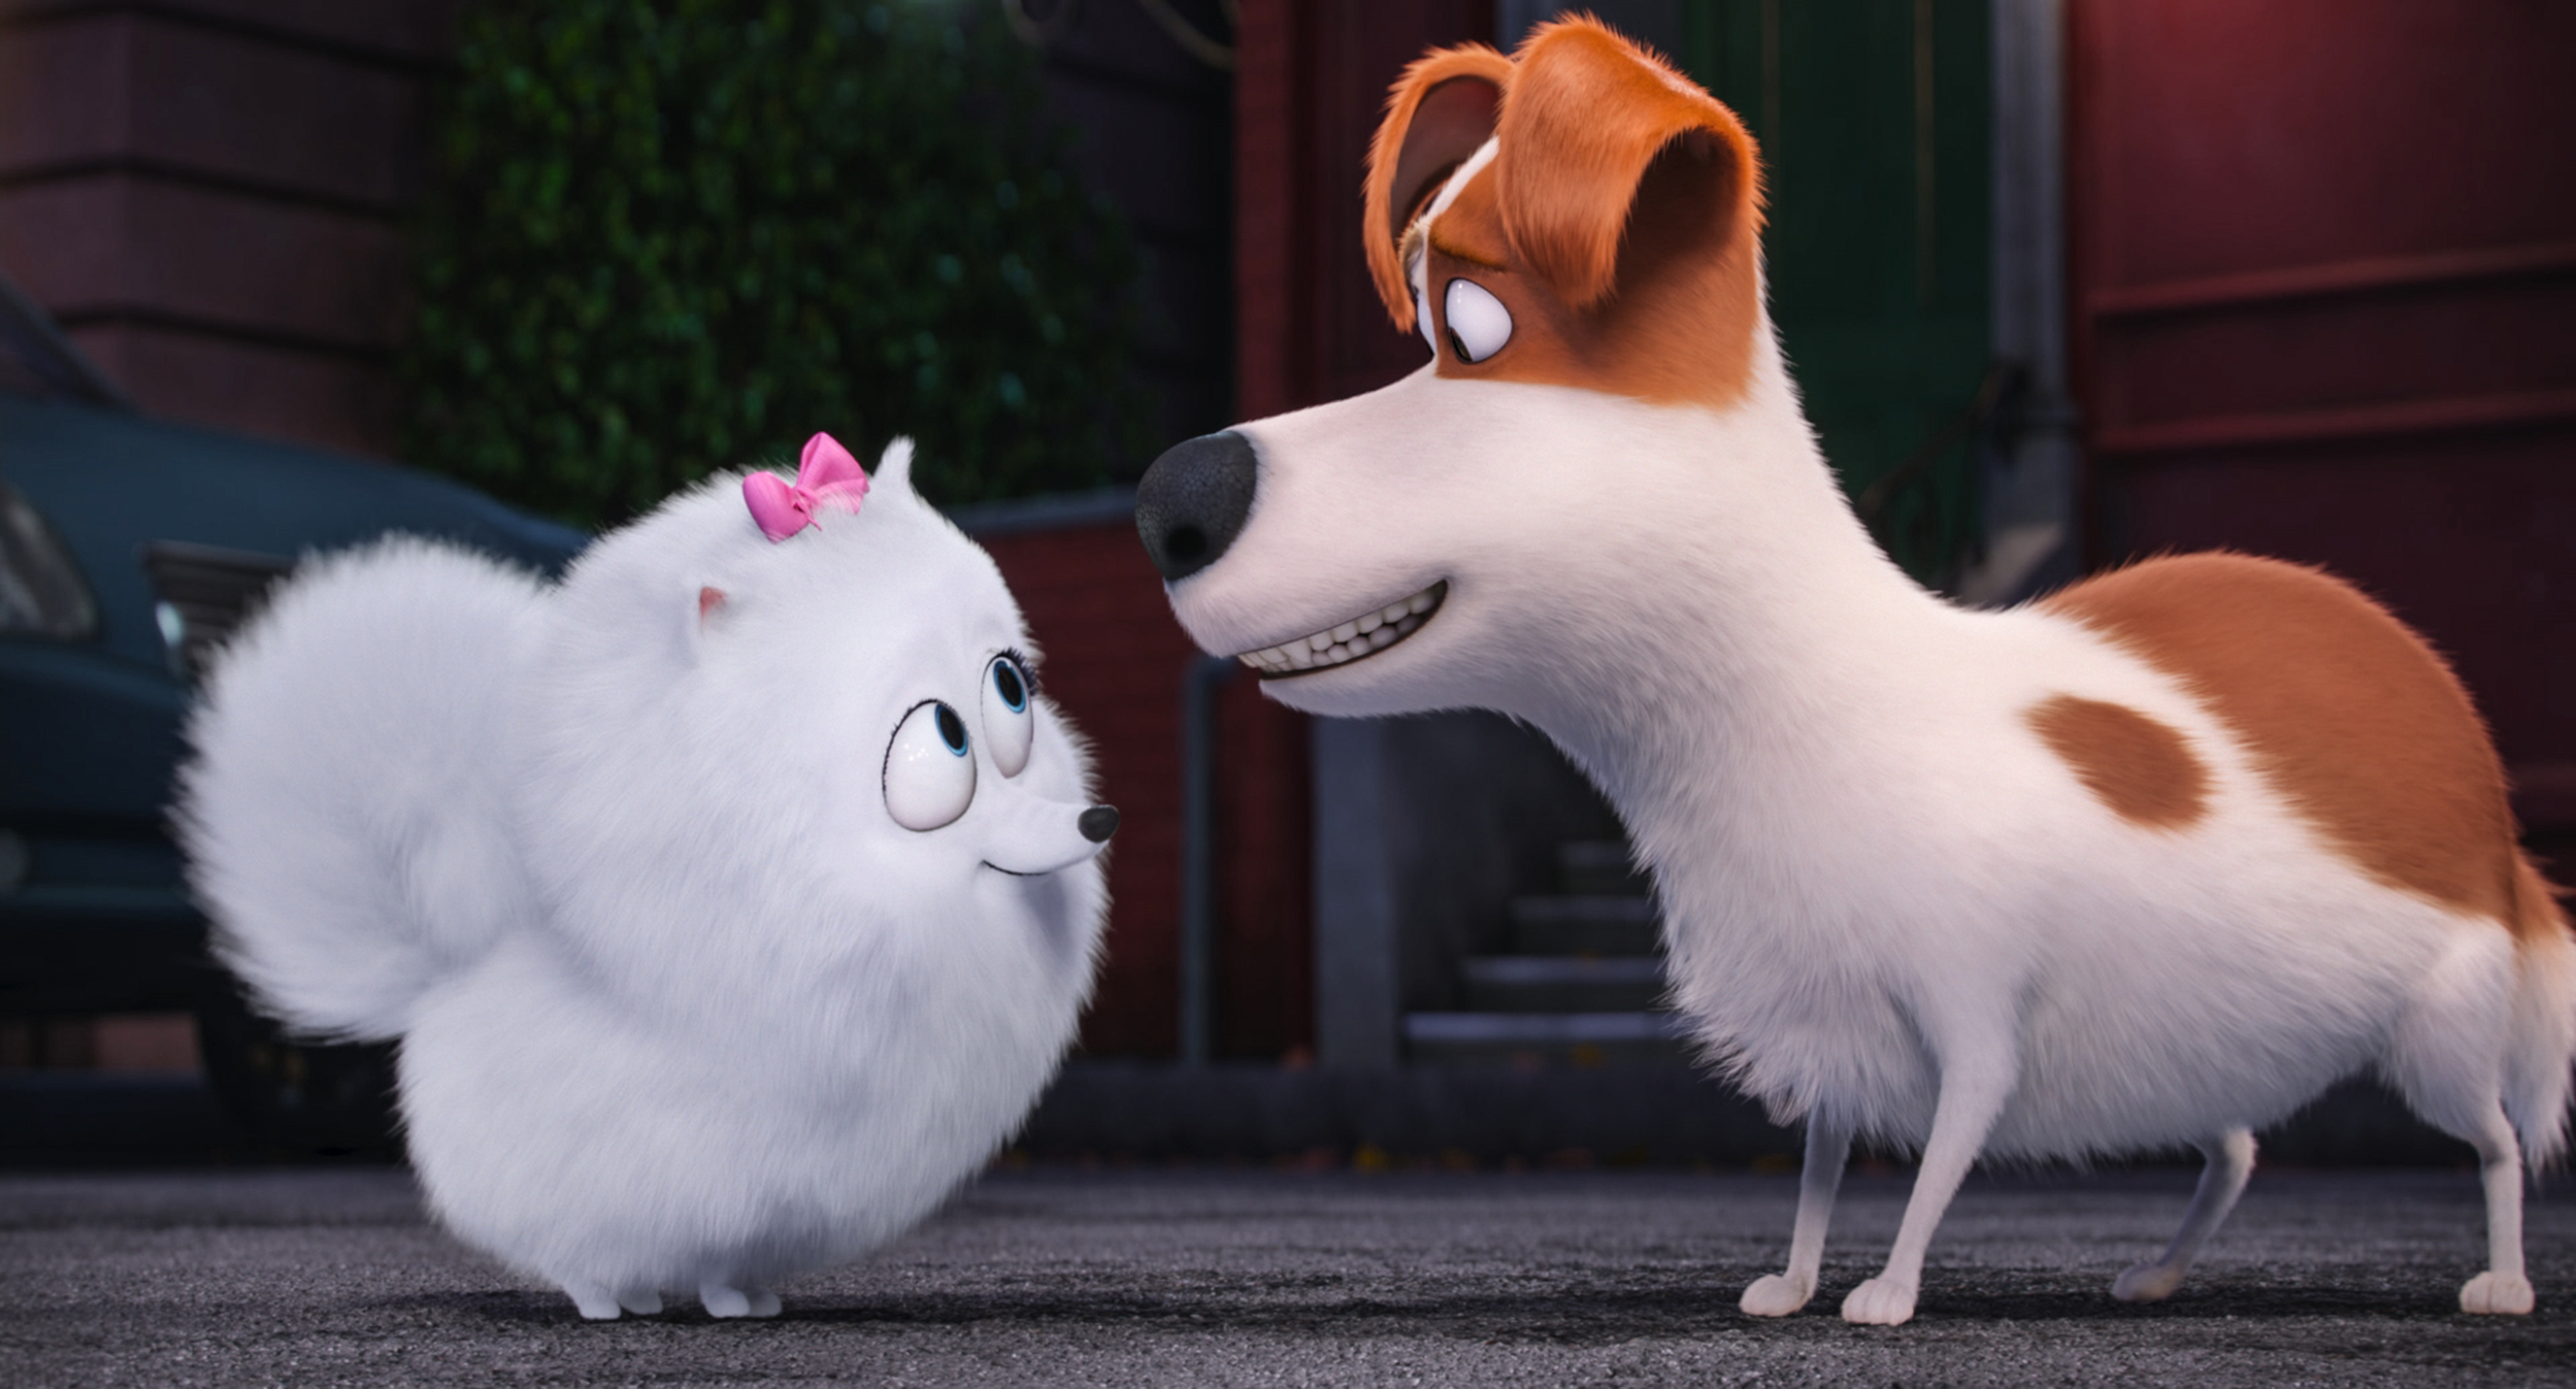 Gidget, voiced by Jenny Slate, left, and Max, voiced by Louis C.K., right, in The Secret Lives of Pets.